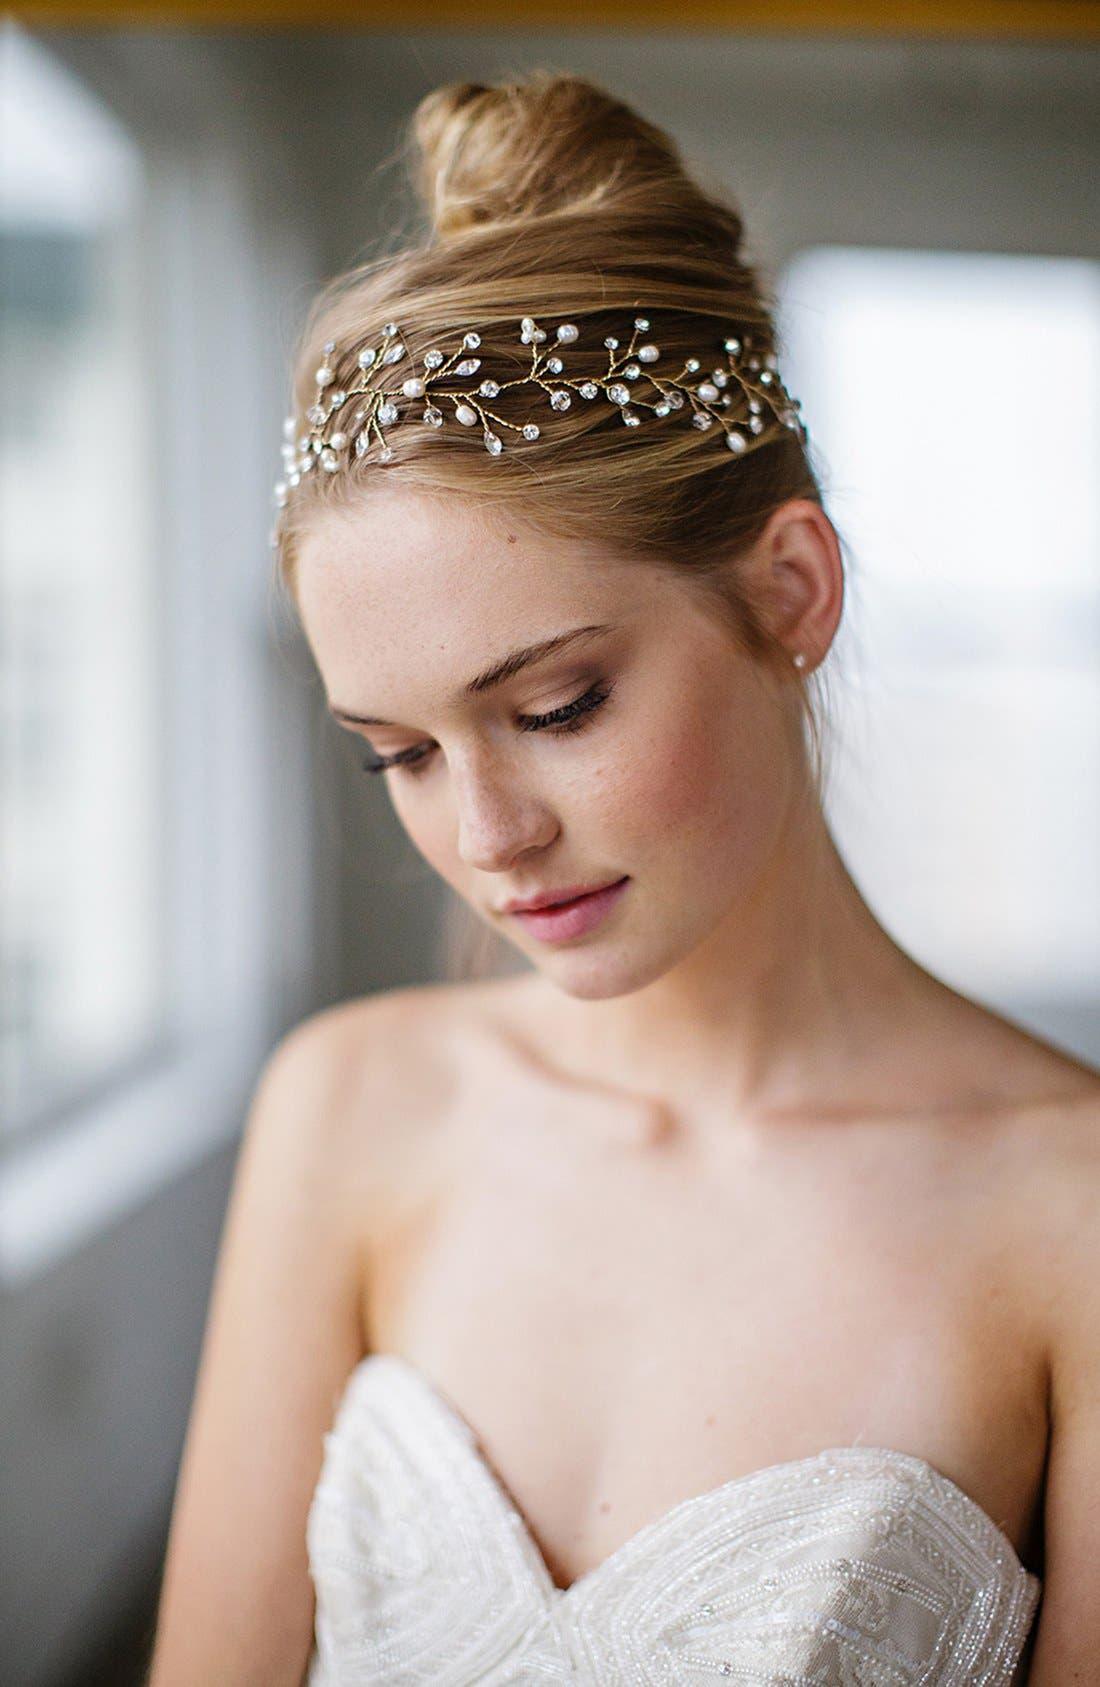 Alternate Image 1 Selected - Brides & Hairpins 'Vitalia' Pearl & Jeweled Head Band